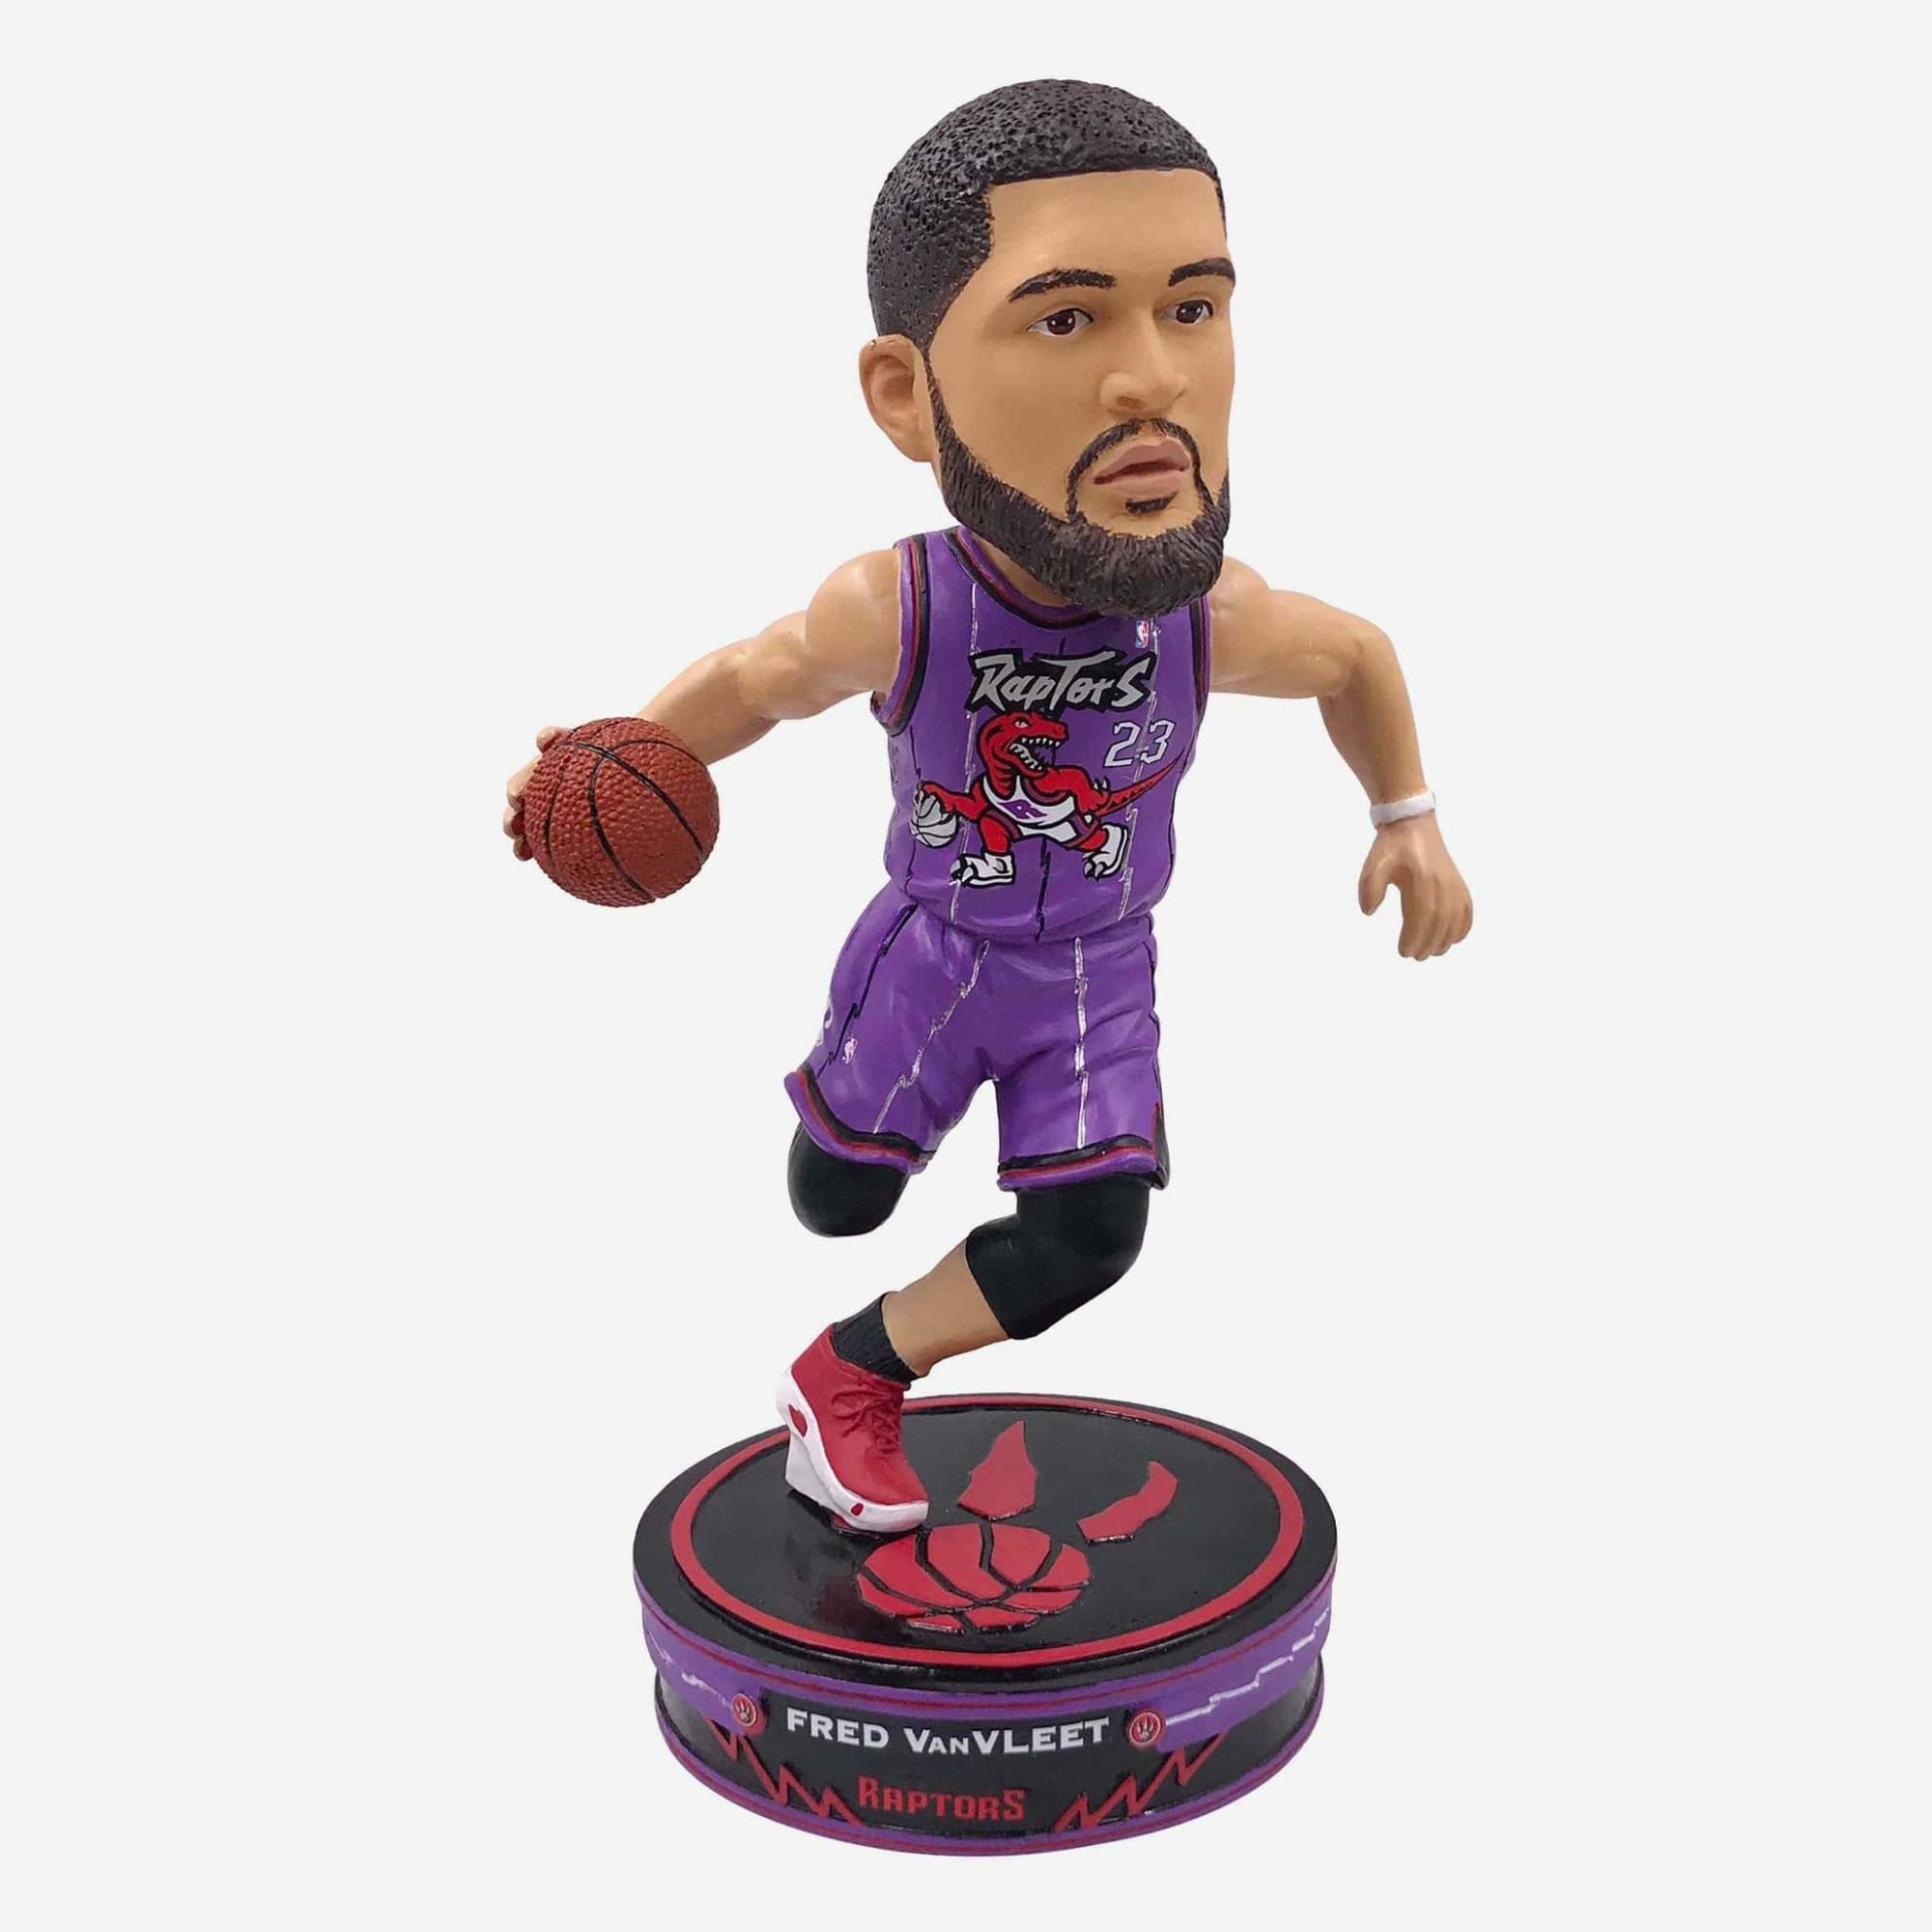 Toronto Raptors fans are going to love this Fred VanVleet bobblehead